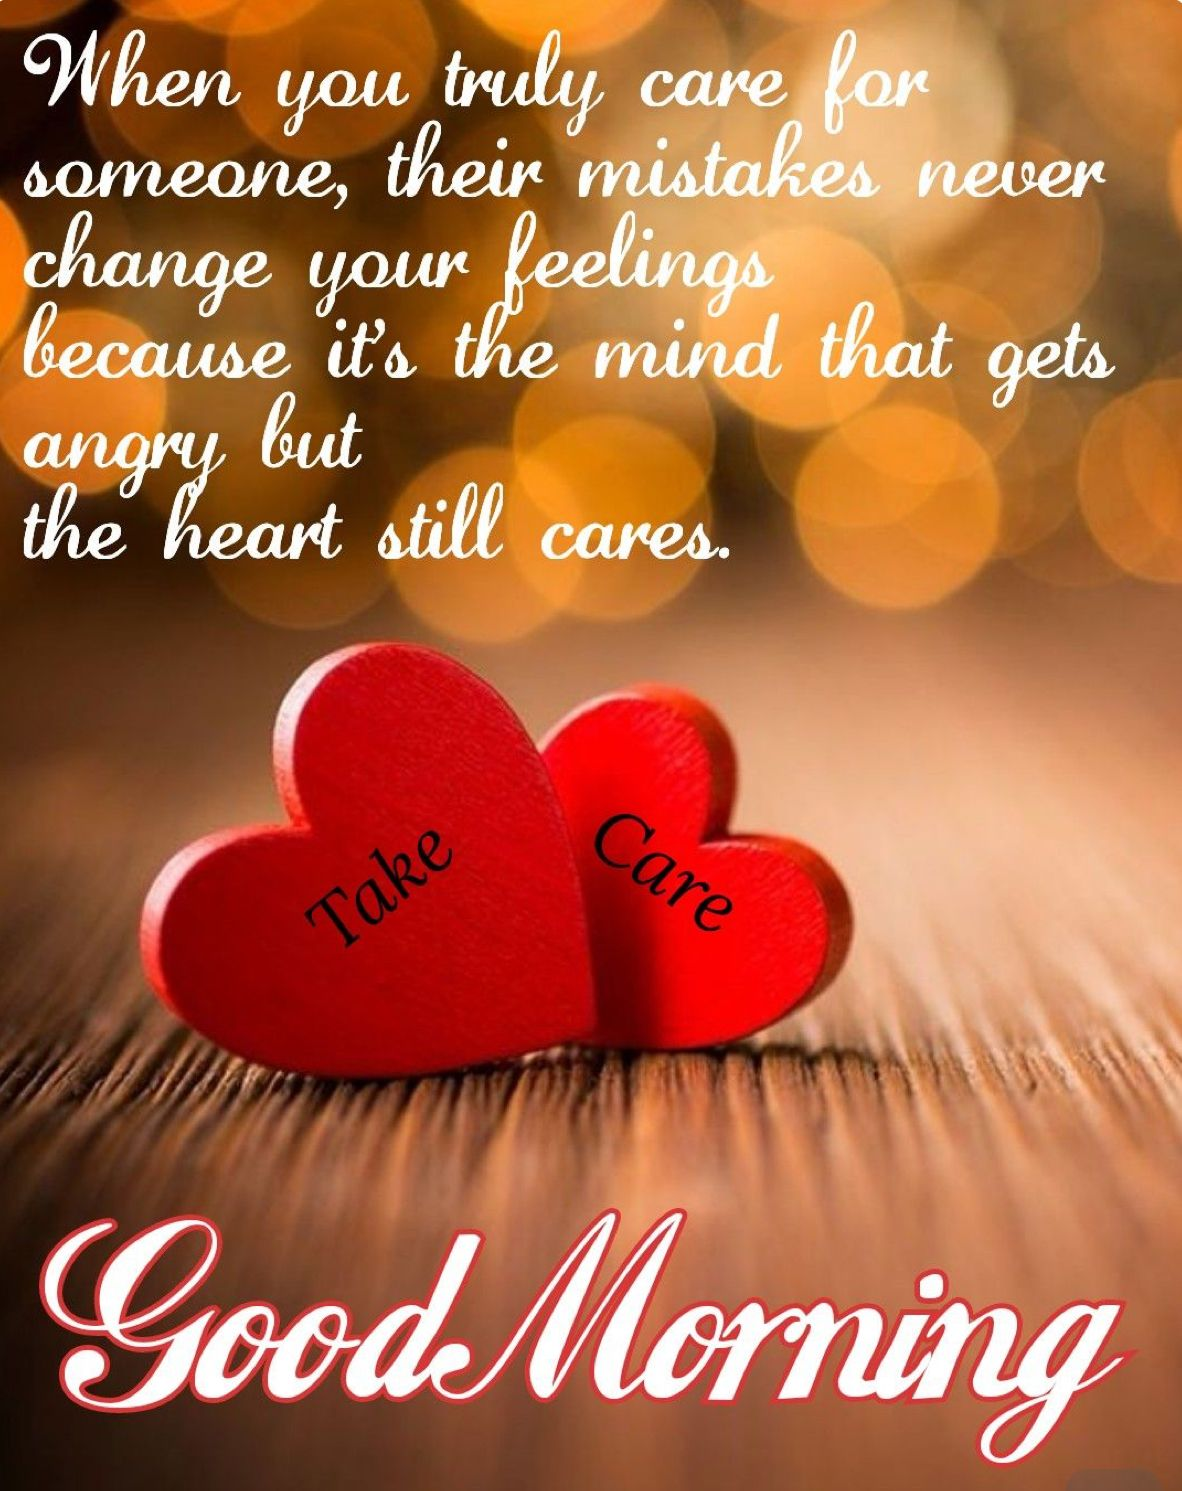 Good Morning Good Morning Love Messages Morning Love Quotes Good Morning Texts